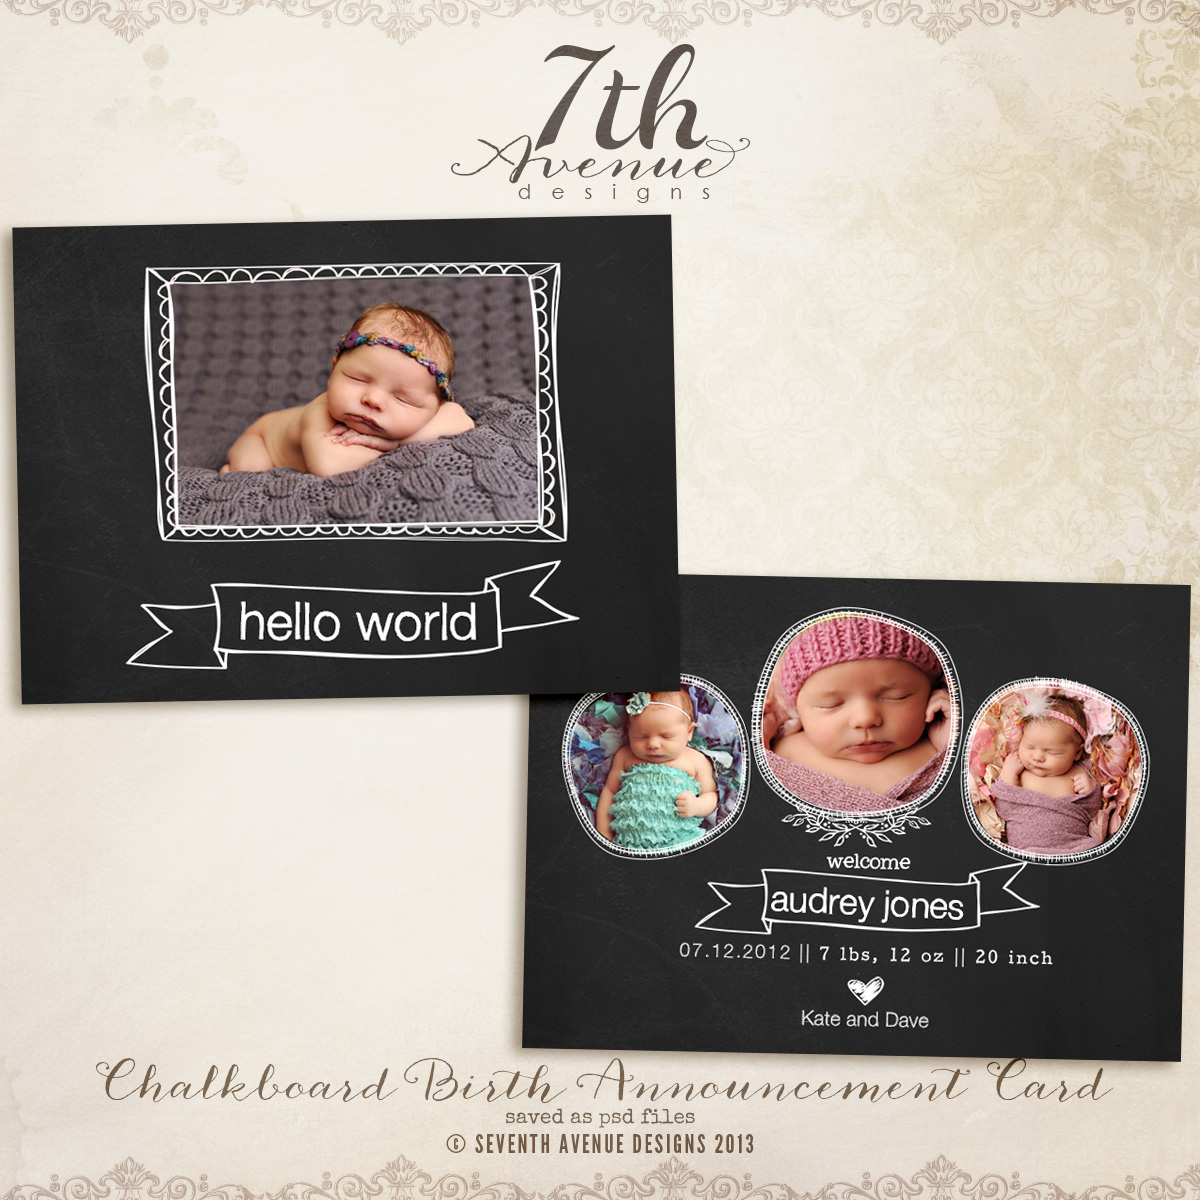 Chalkboard Birth Announcement Card Templates